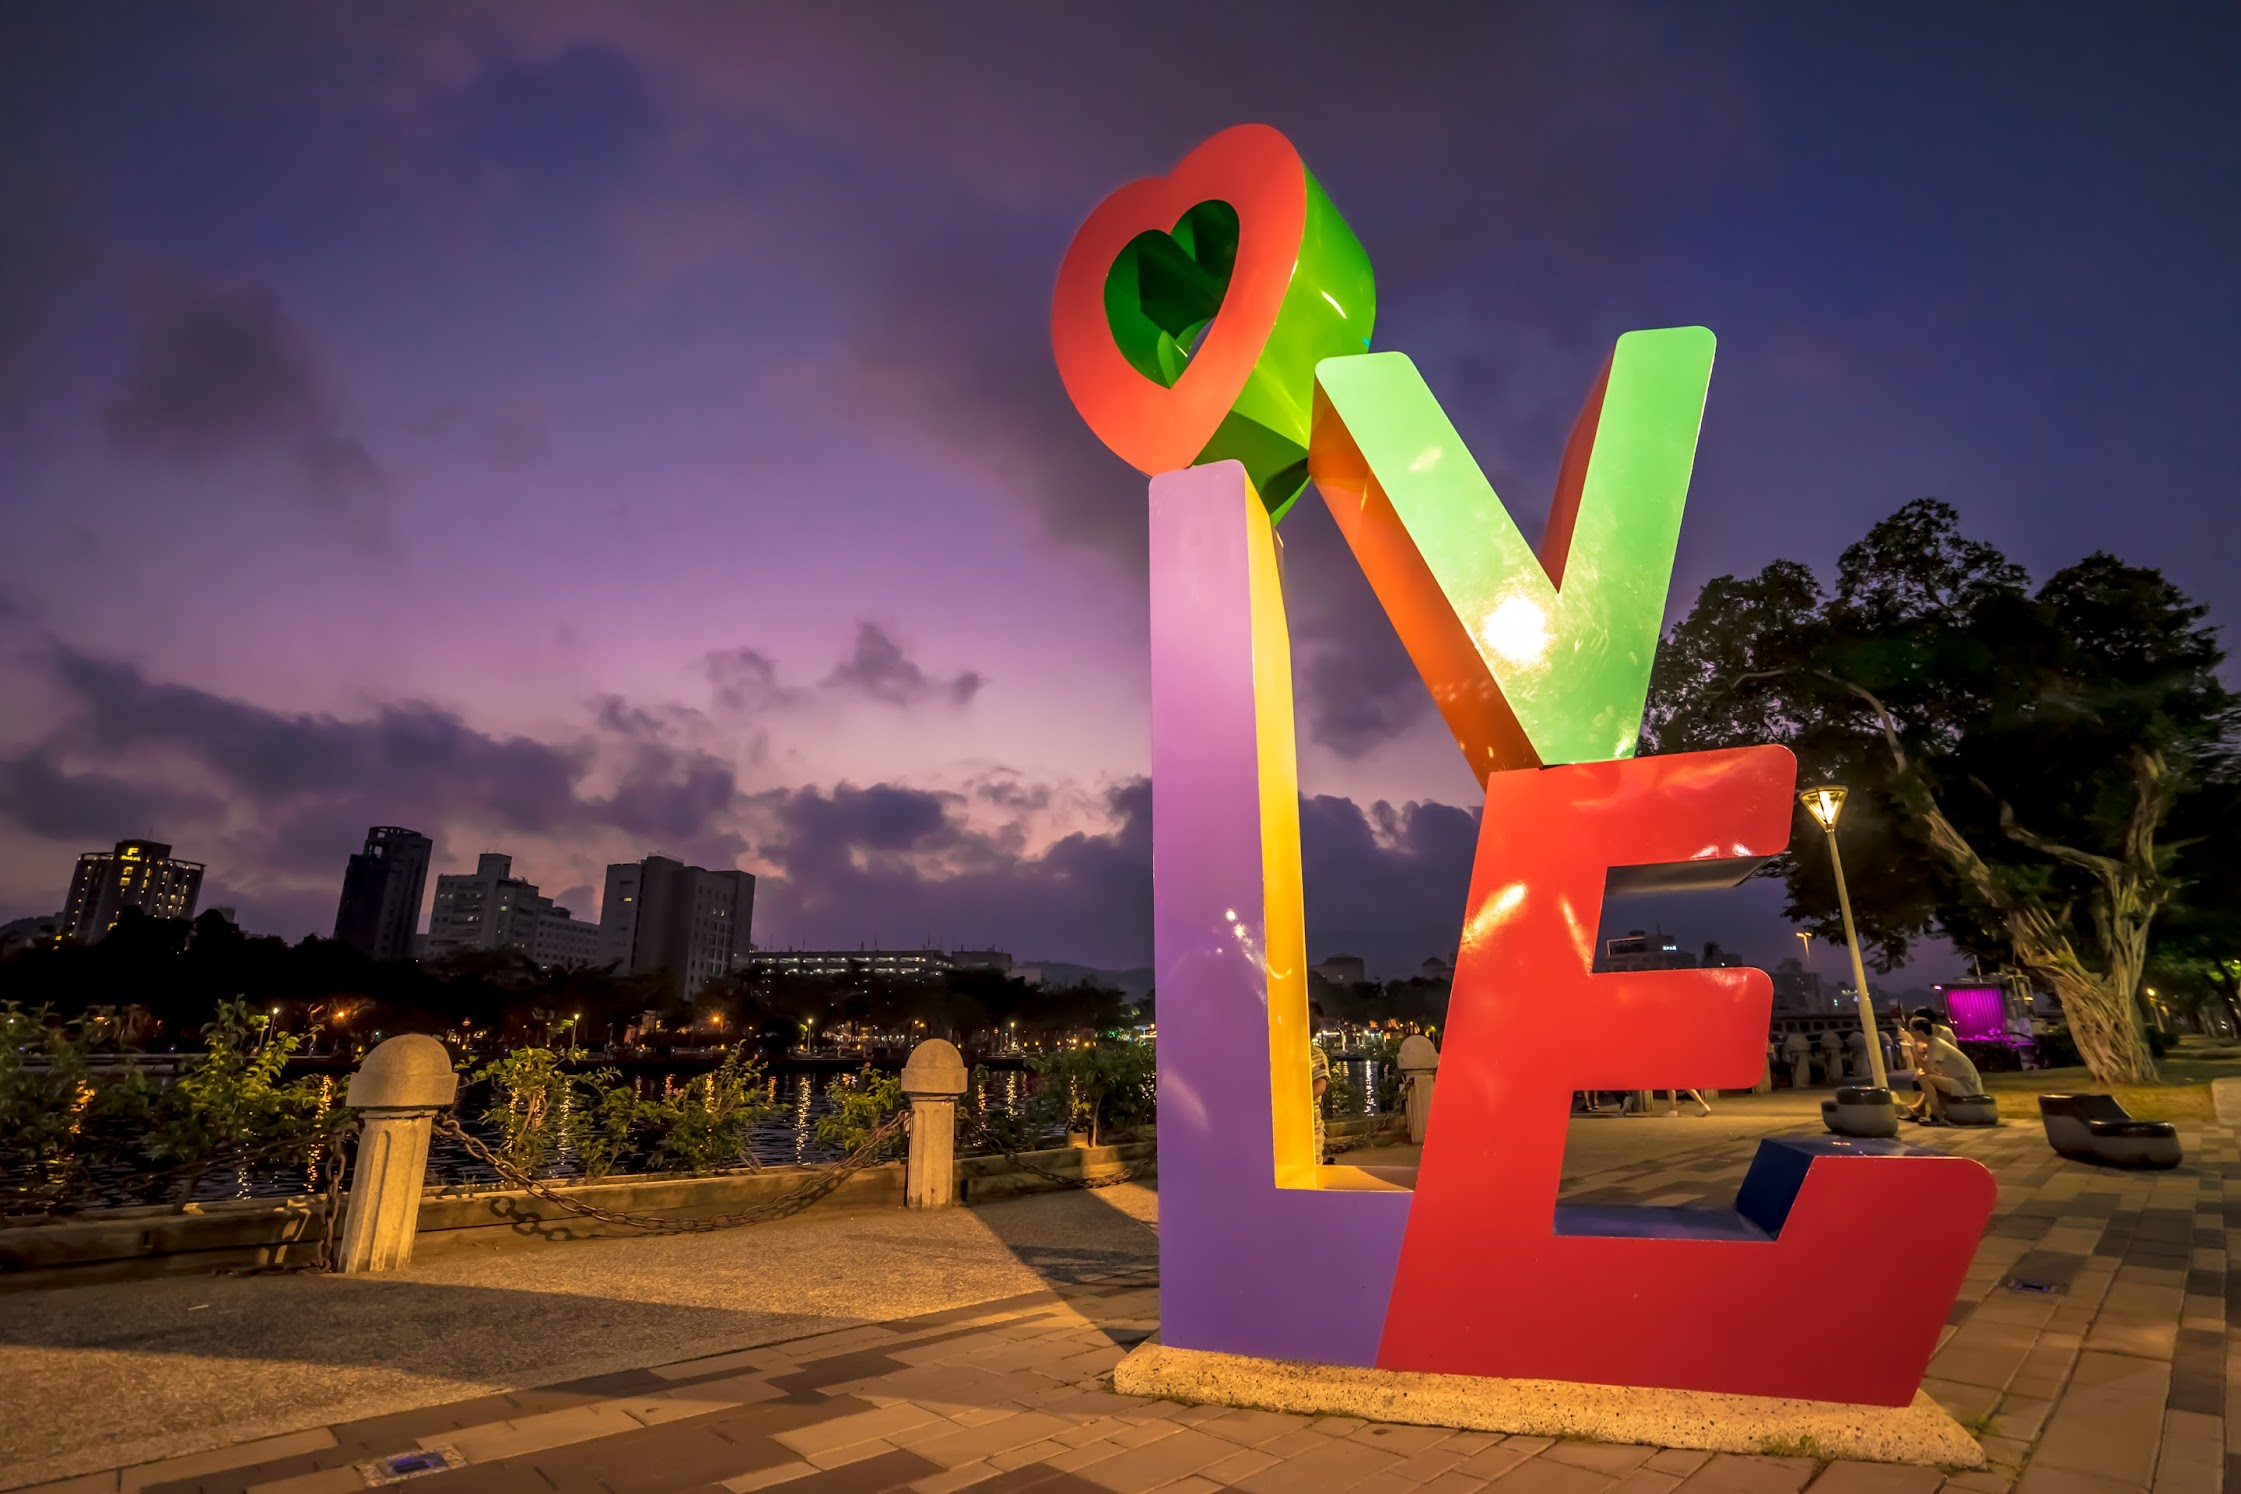 Taiwan Kaohsiung Love River light-up